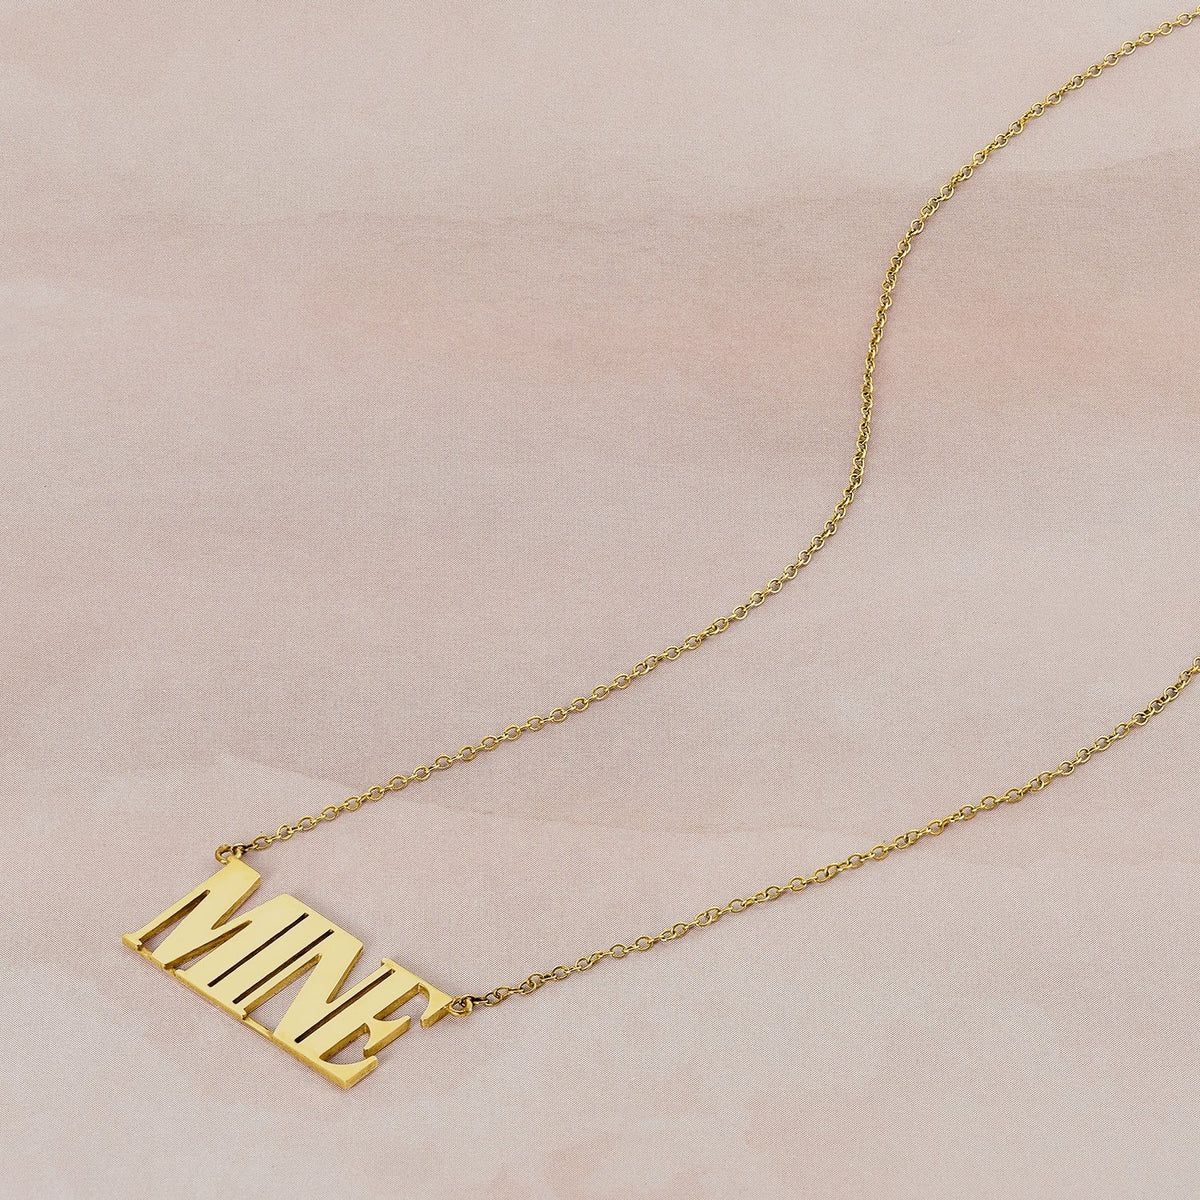 MINE Necklace